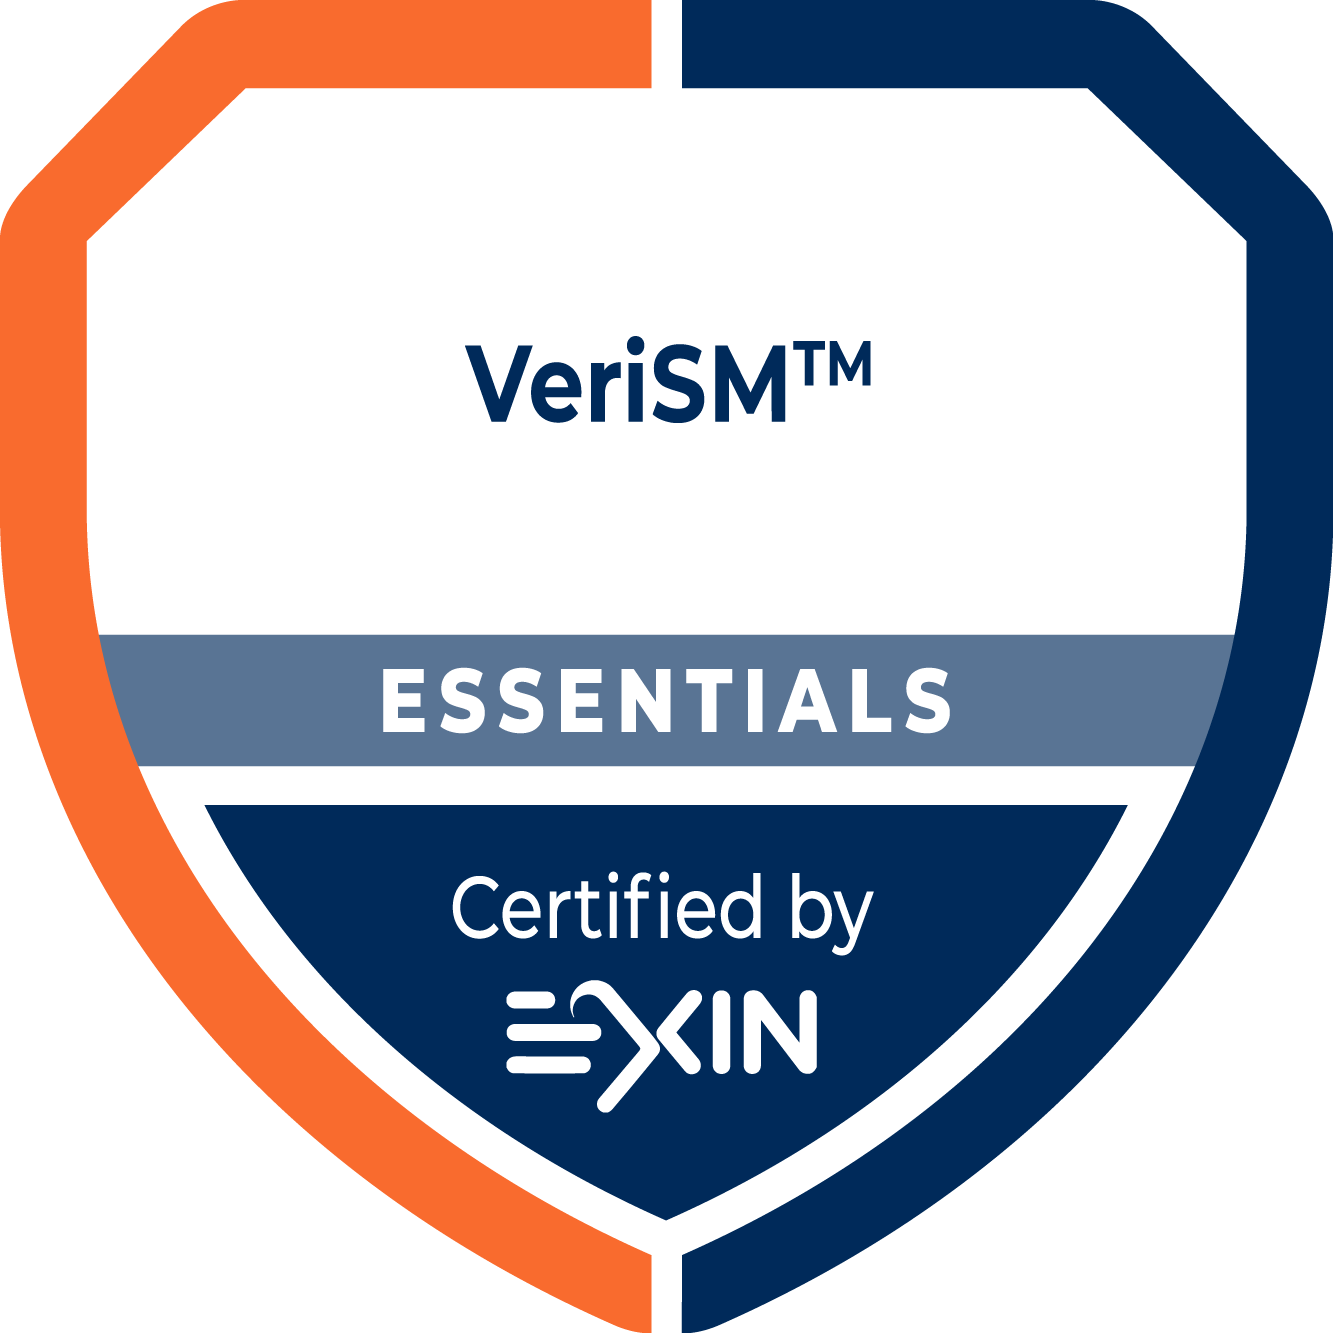 VeriSM™ Essentials